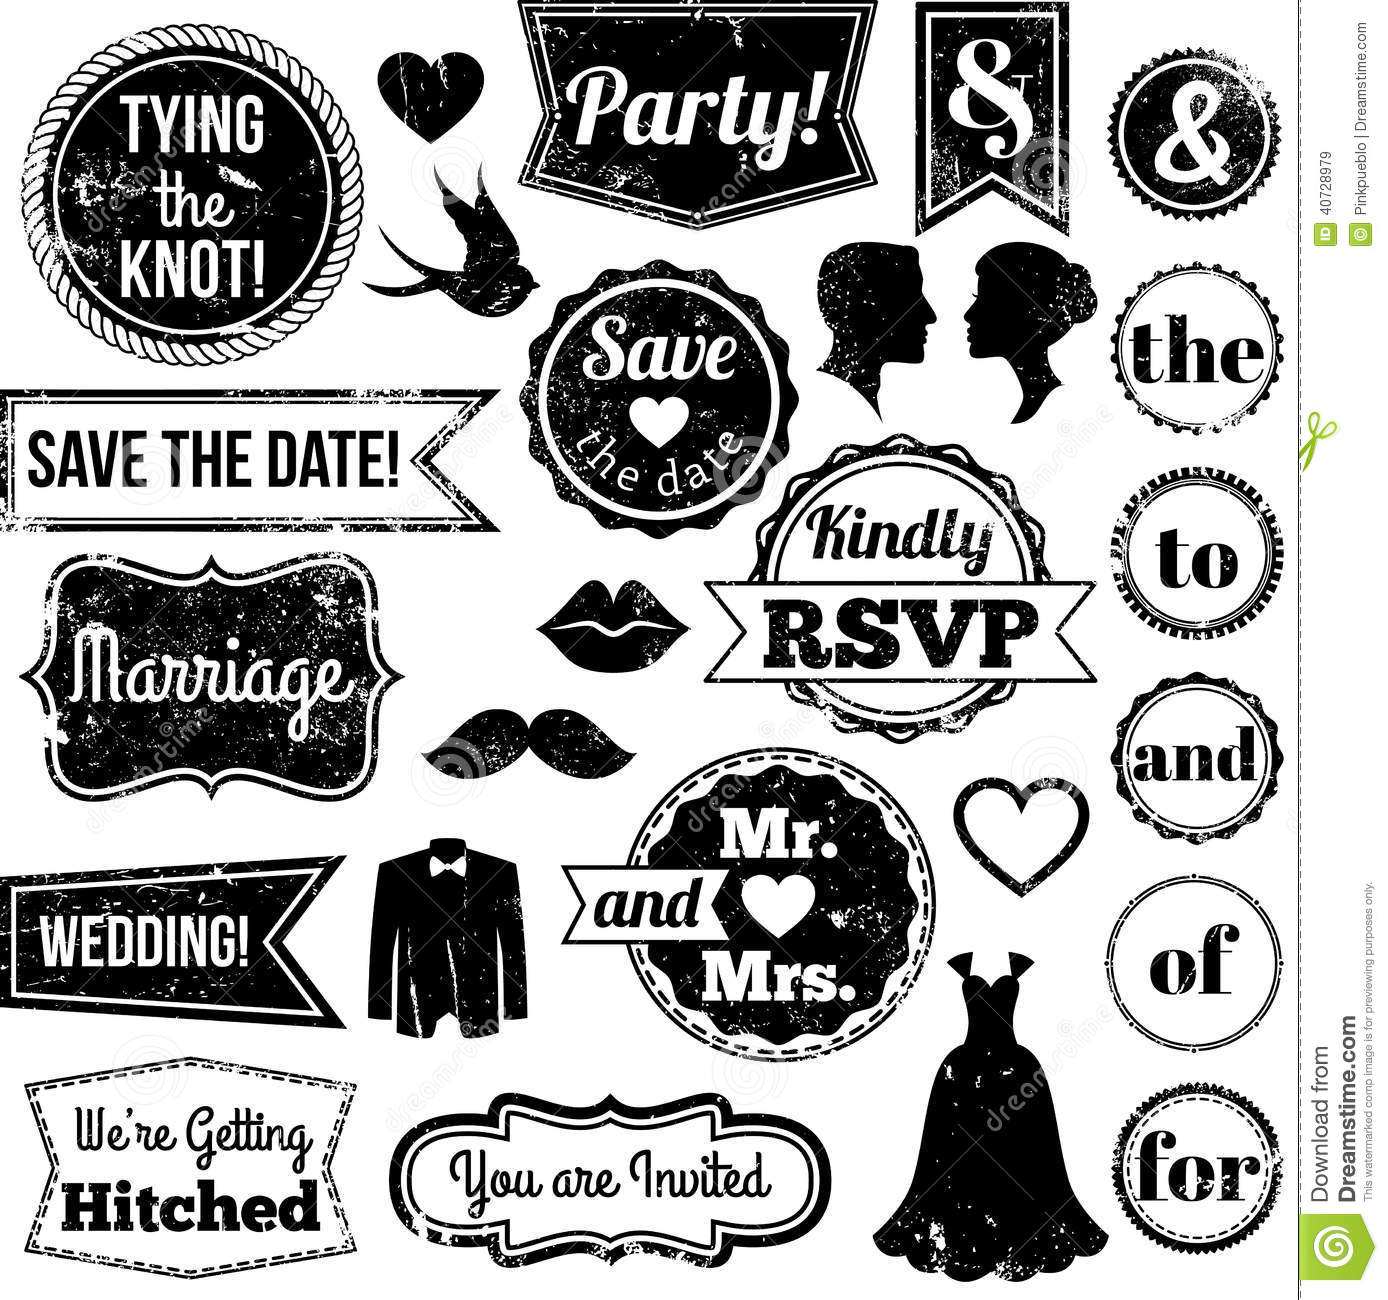 Royalty Free Stock Photography Heart Border Image17150567 further Royalty Free Stock Images Vector Collection Vintage Wedding Themed Badges St s Textured Image40728979 additionally Royalty Free Stock Photo Page Decorations Black Whitecollection Dividers Border Greetings Prints Designs Image34767975 furthermore Free Clip Art Borders together with Royalty Free Stock Images Rectangular Frame Swirl Image2327559. on wedding invitation design free download